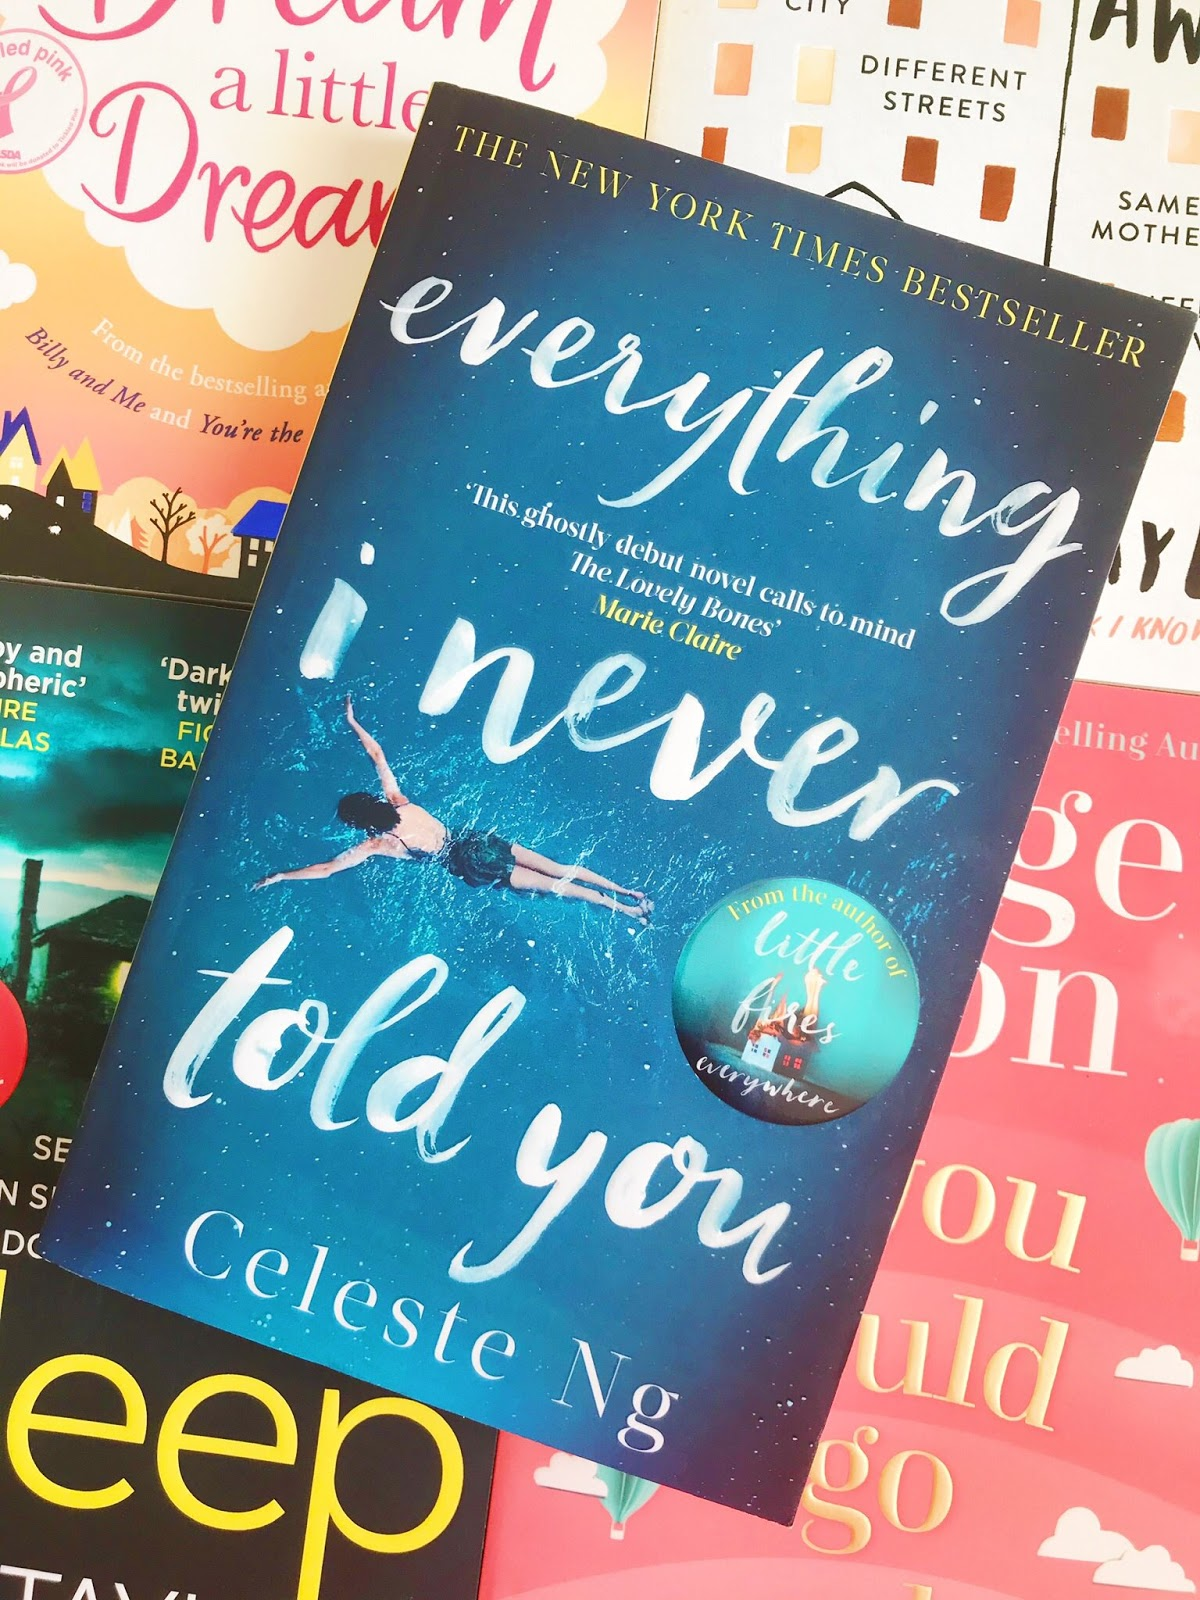 Everything I Never Told You by Celeste NG book on top of 4 other books